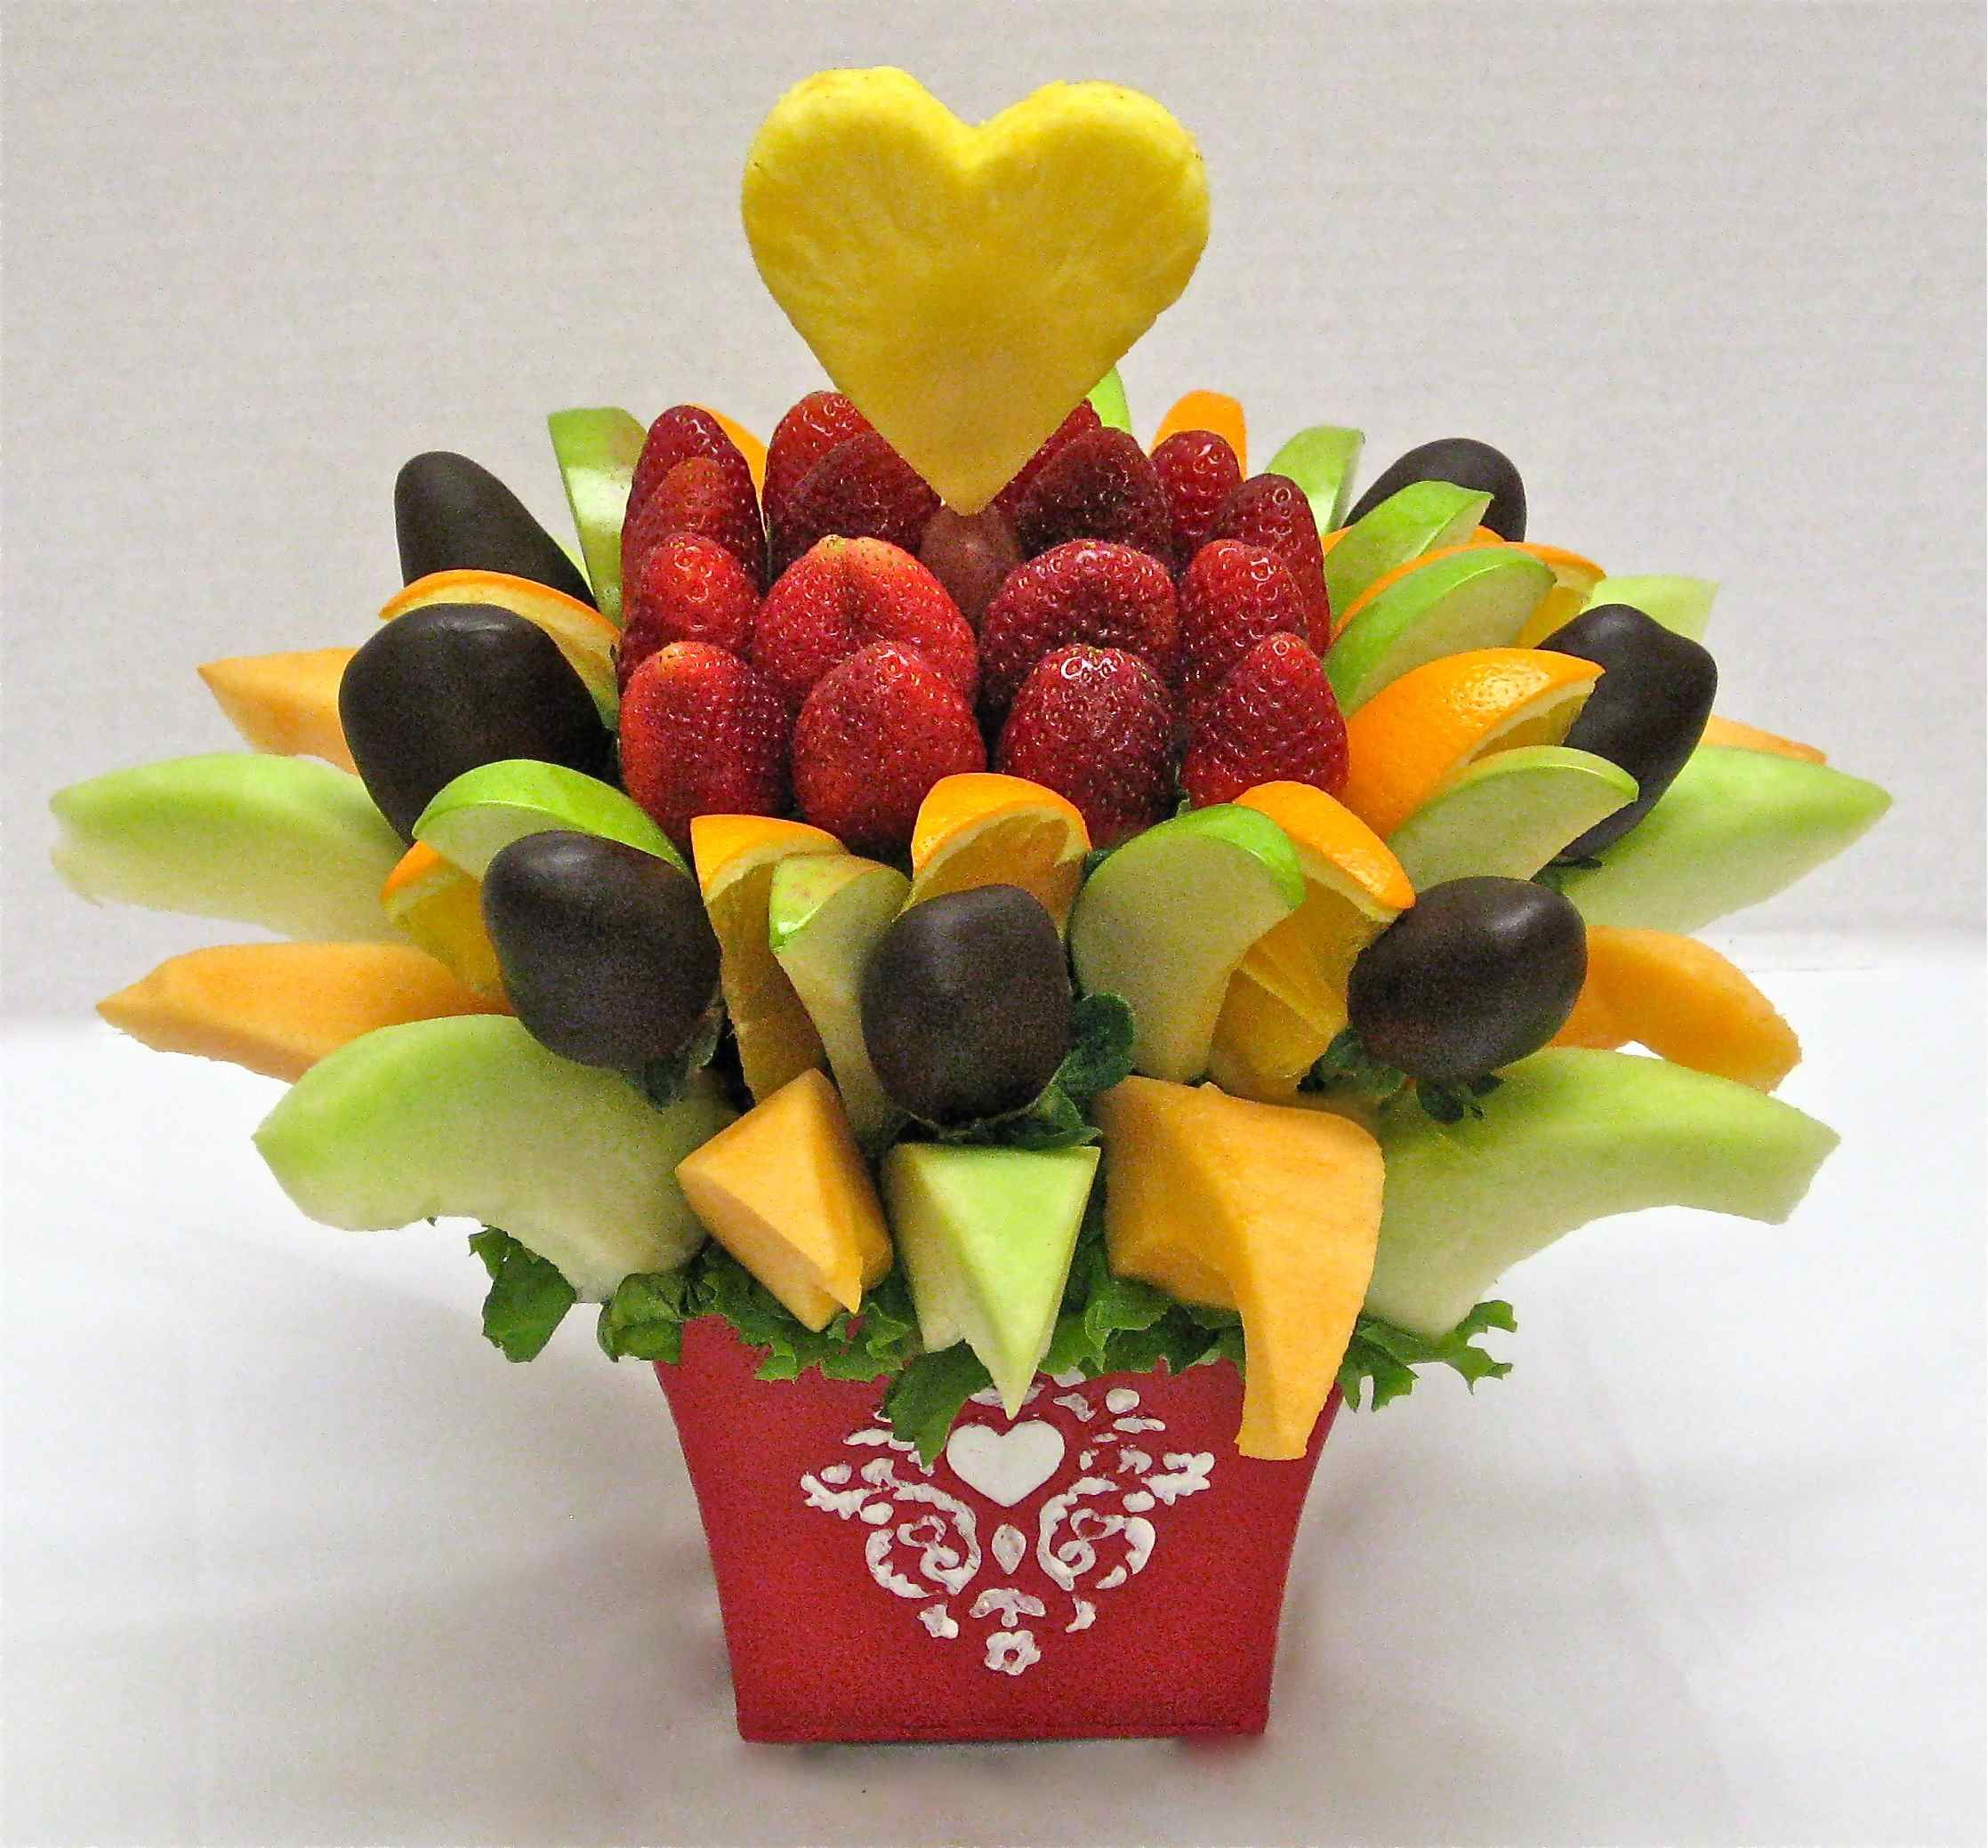 How To Make A Do It Yourself Edible Fruit Arrangement Edible Fruit Arrangements Fruit Arrangements Edible Arrangements